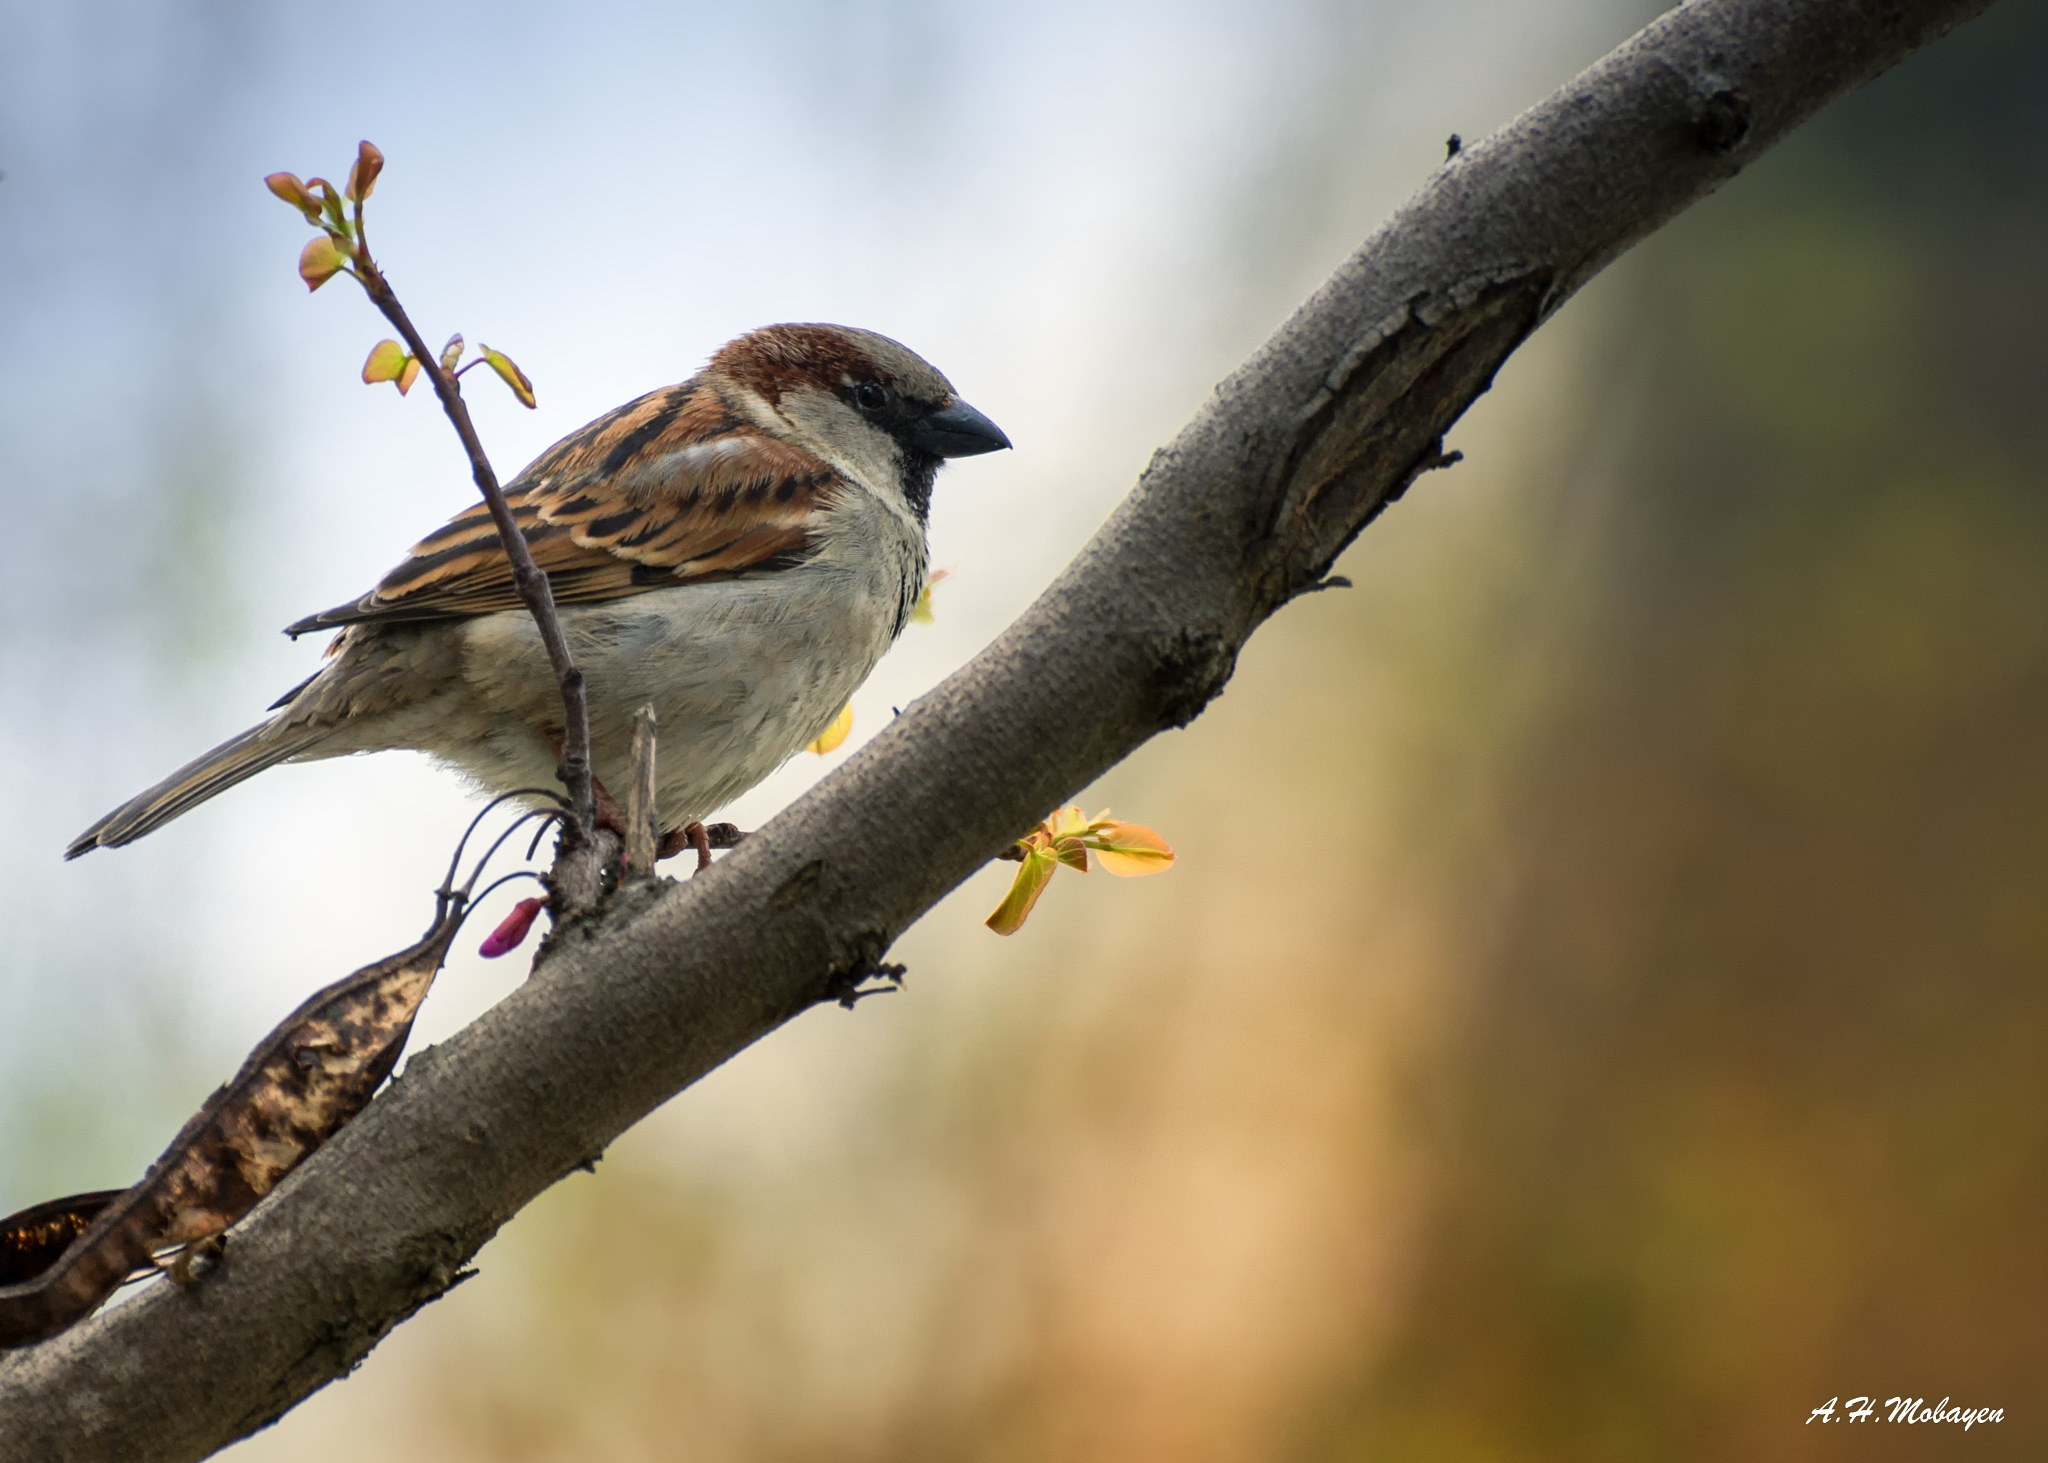 Old world Sparrow by ahmobayen